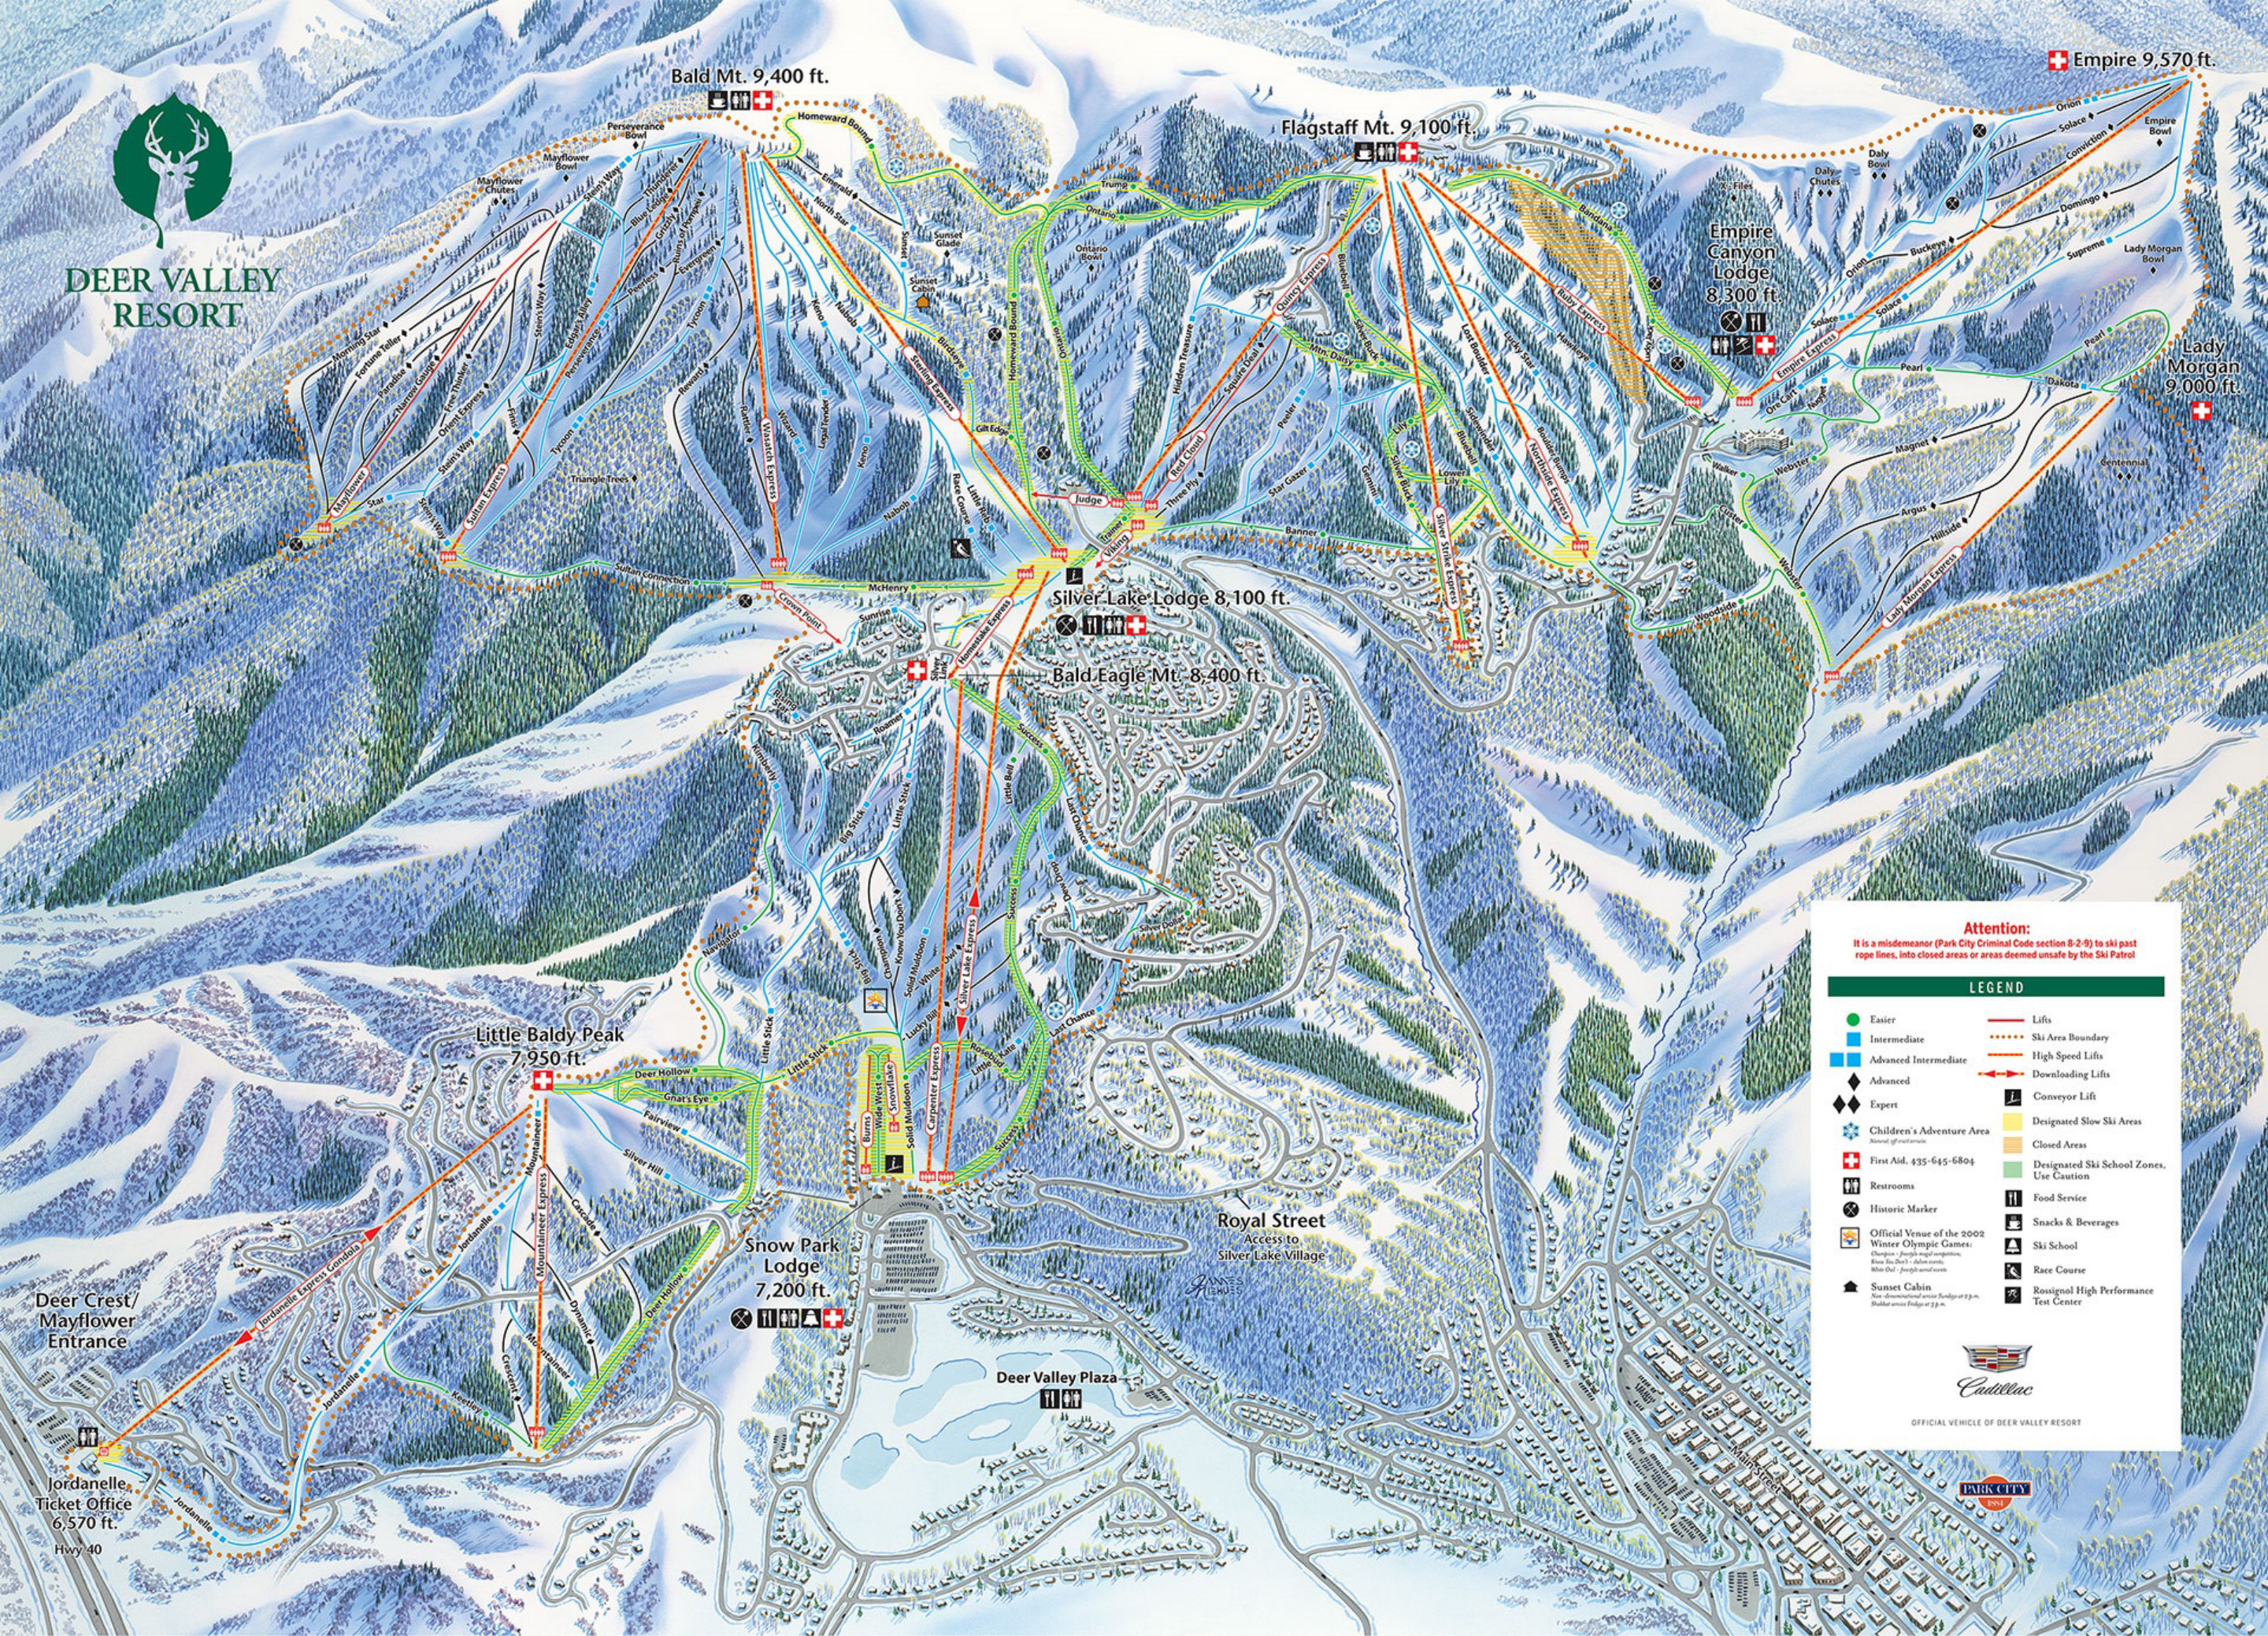 Deer Valley Map Deer Valley Resort   SkiMap.org